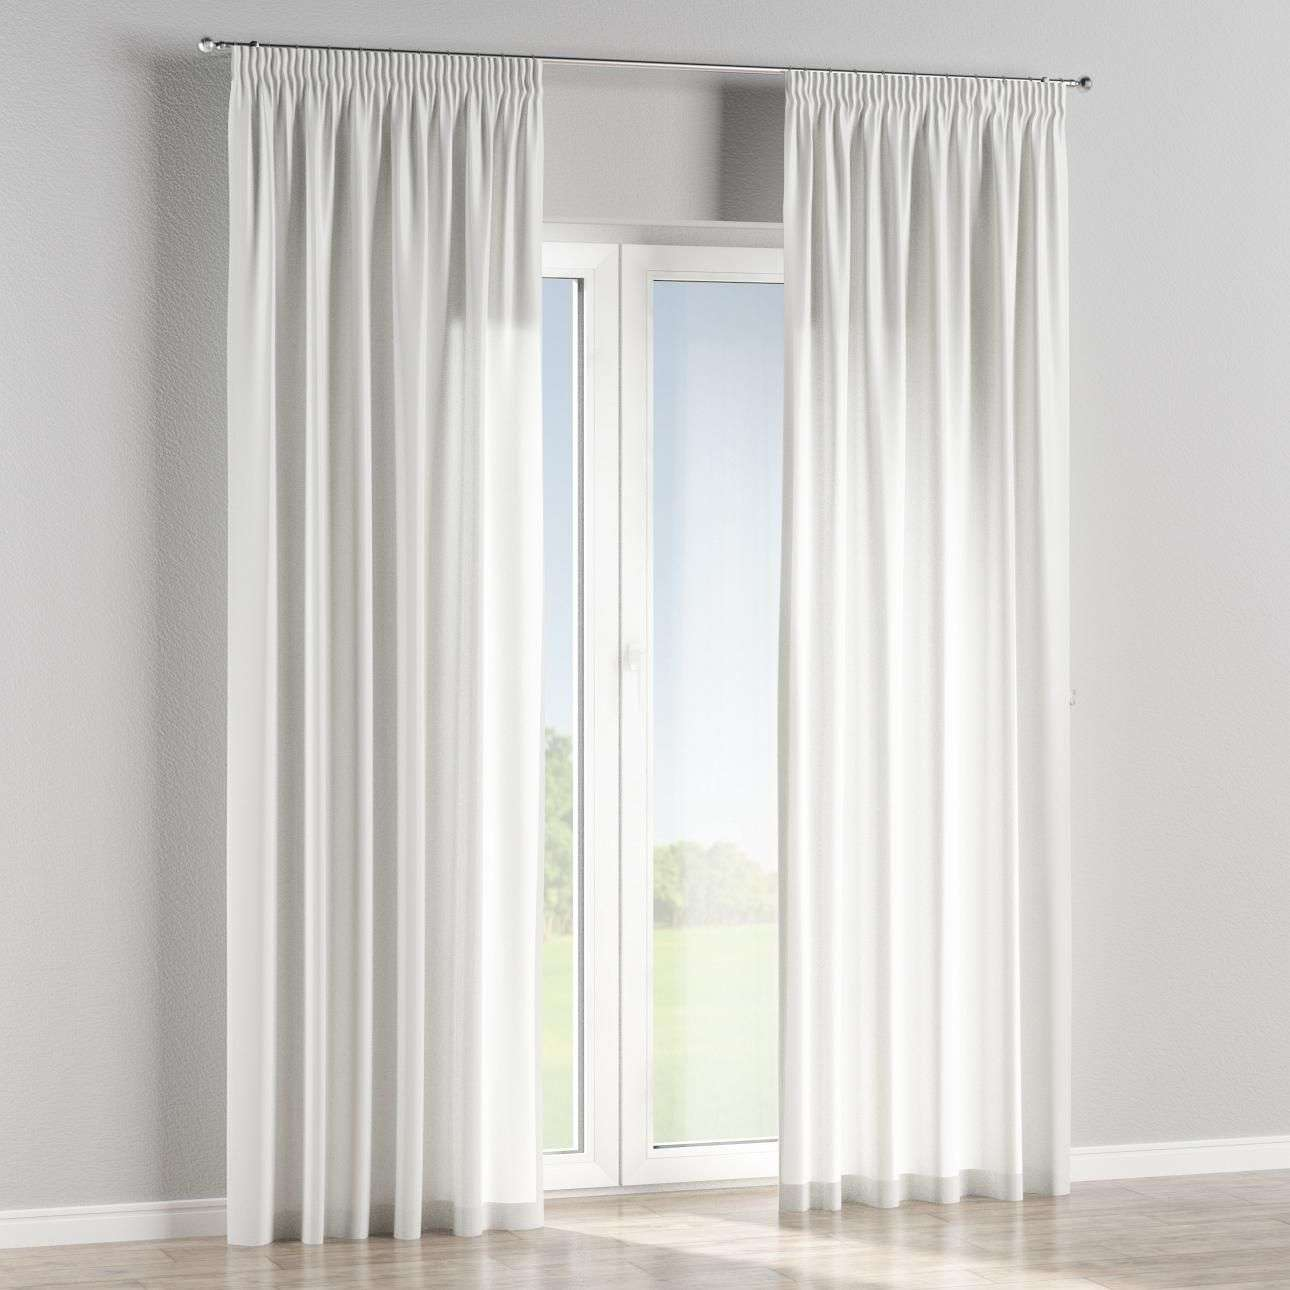 Pencil pleat curtains in collection Flowers, fabric: 140-90